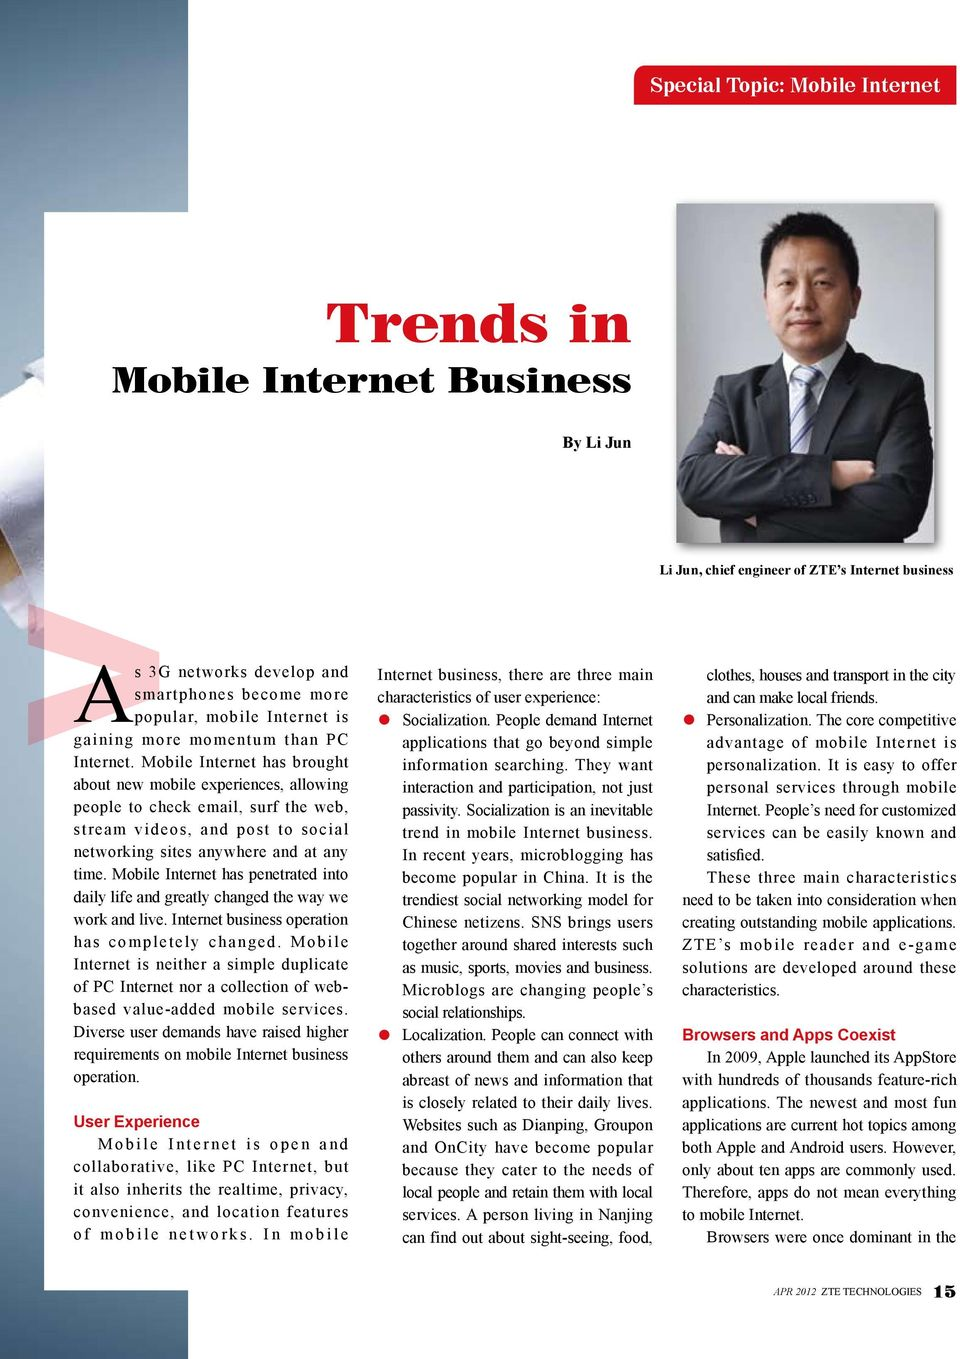 Mobile Internet has brought about new mobile experiences, allowing people to check email, surf the web, stream videos, and post to social networking sites anywhere and at any time.